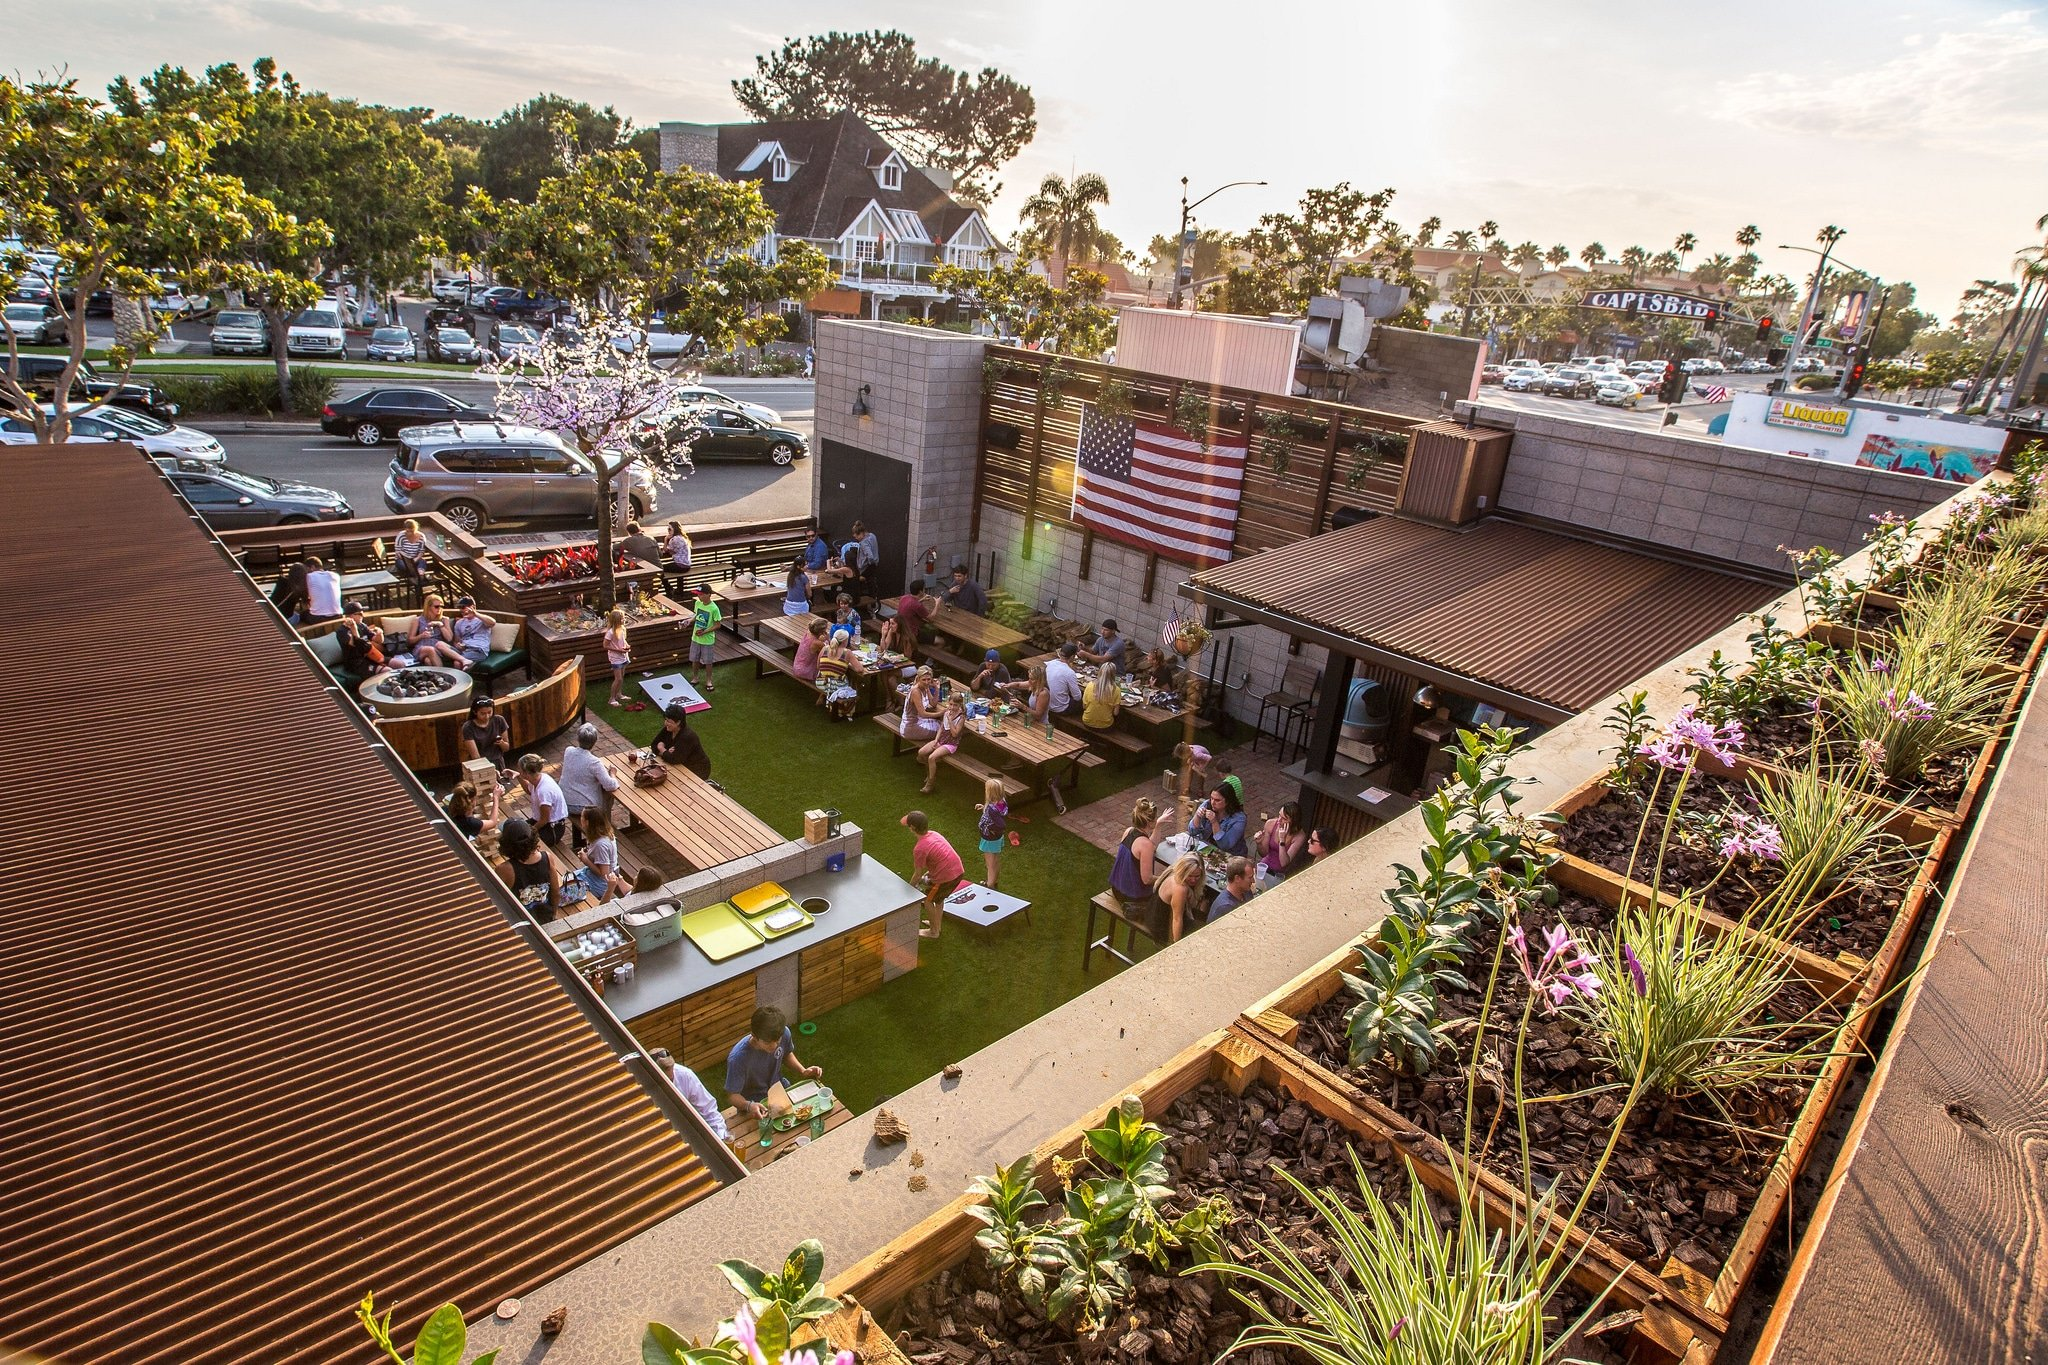 Kids play corn hole while guests hang out at picnic tables at Park 101 in Carlsbad's Garden Pub area.